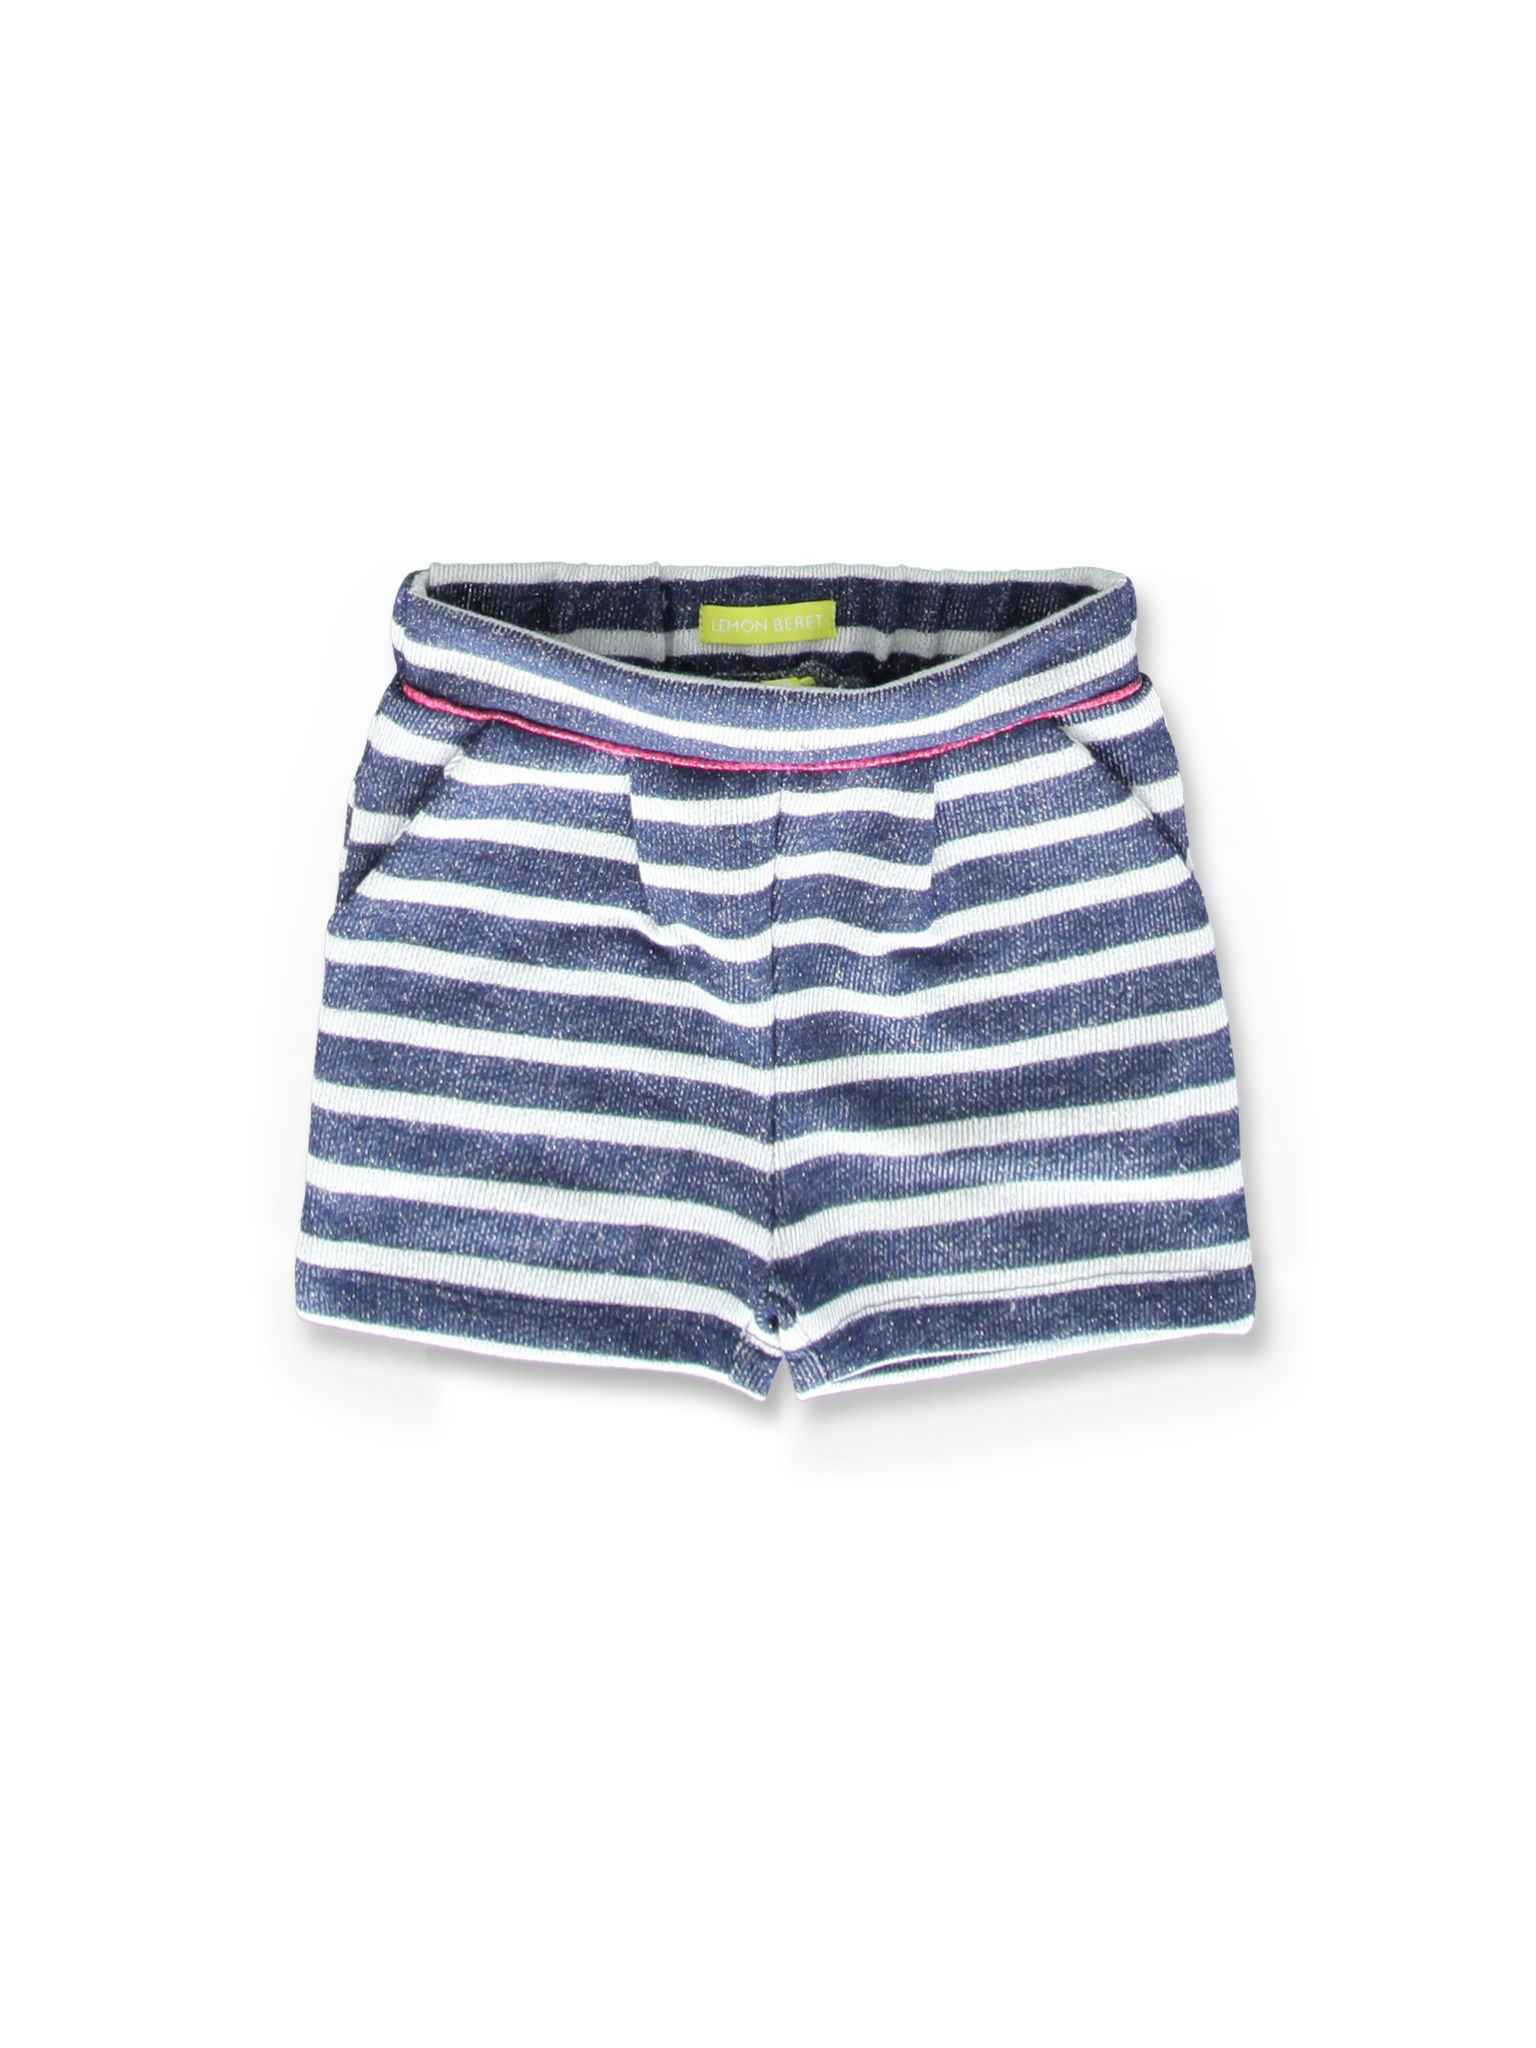 All Brands | Summerproducts Baby | Shorts | 8 pcs/box